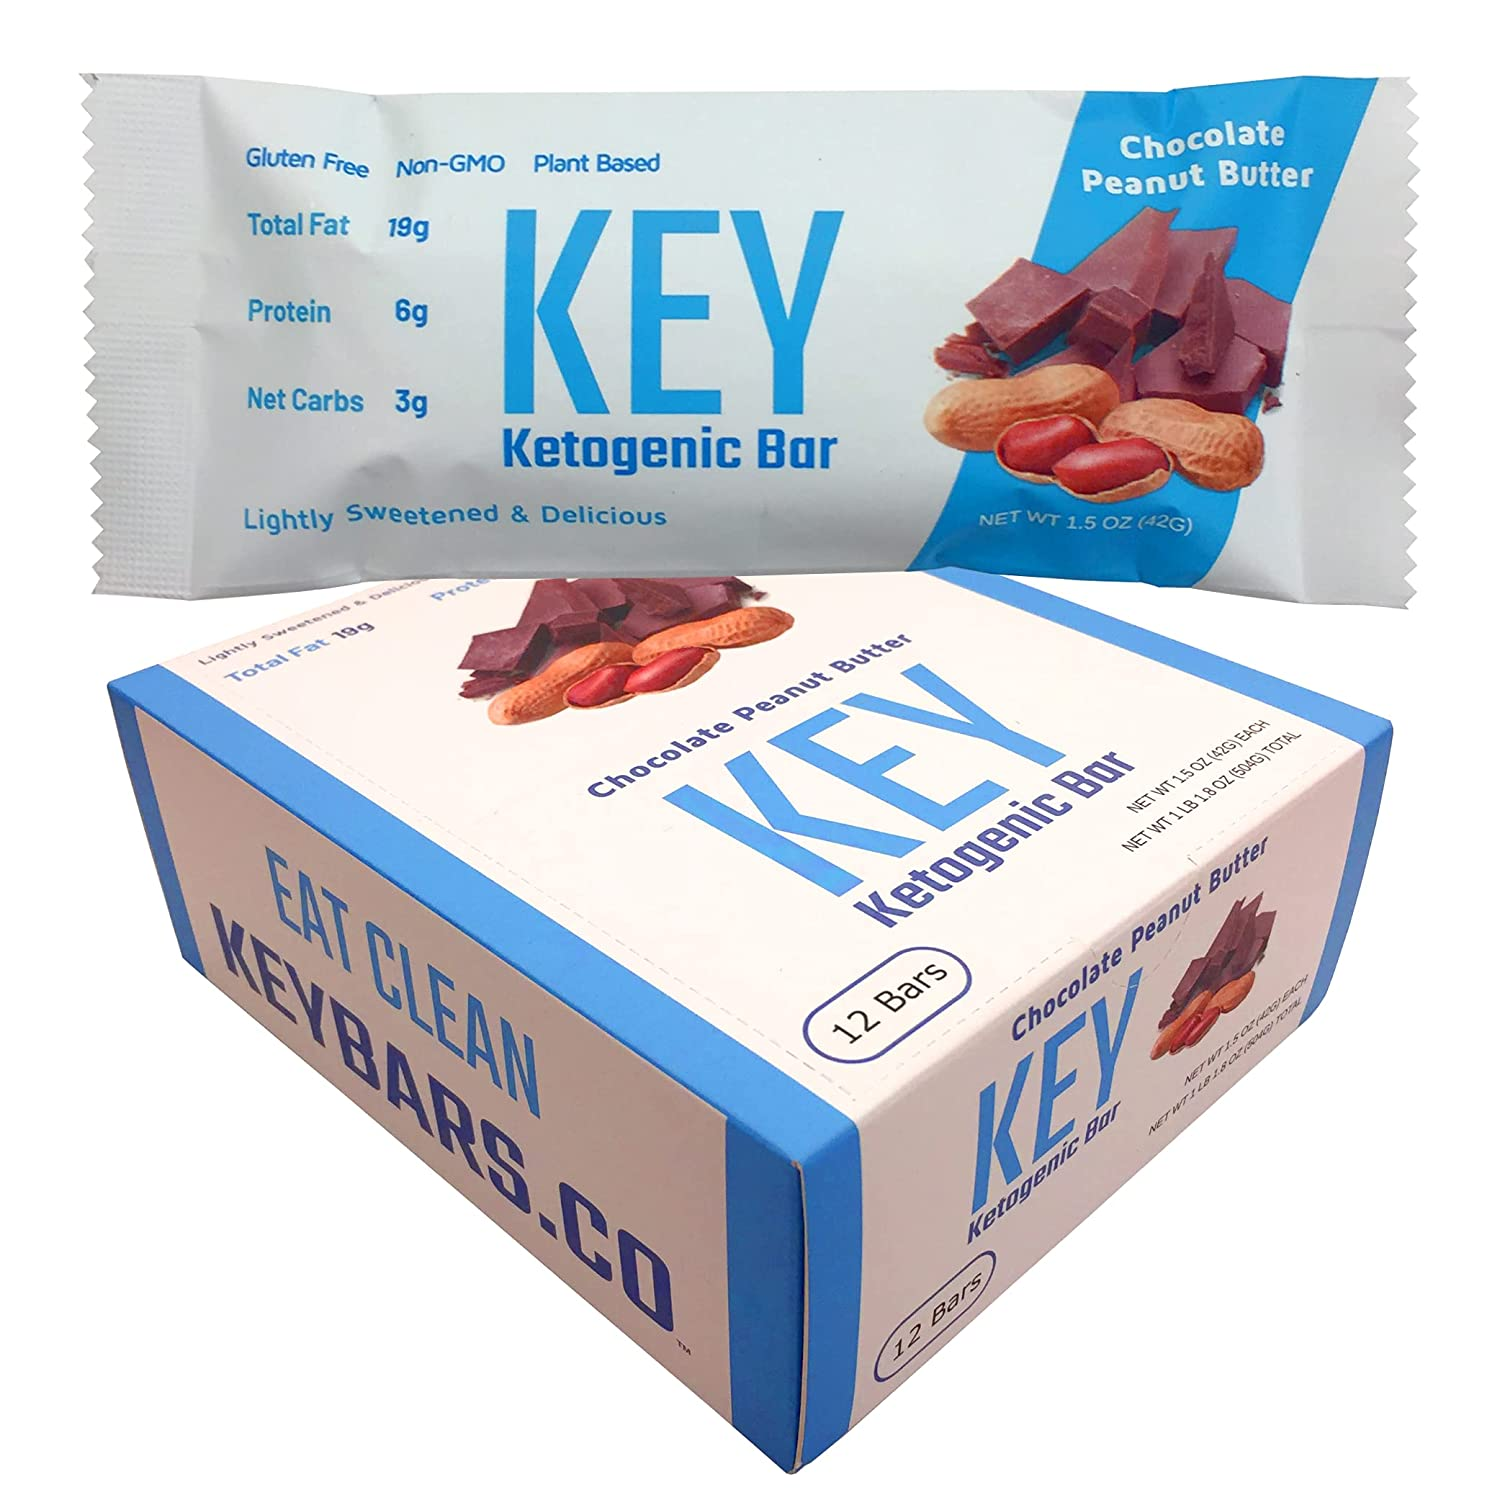 Keto Key Bars - Chocolate Peanut Butter Ketogenic Bars - High Fat, Low Carb. Keto Protein Bars as a Keto Snack Food for on the go Keto Diets. 12 Pack Key Bars